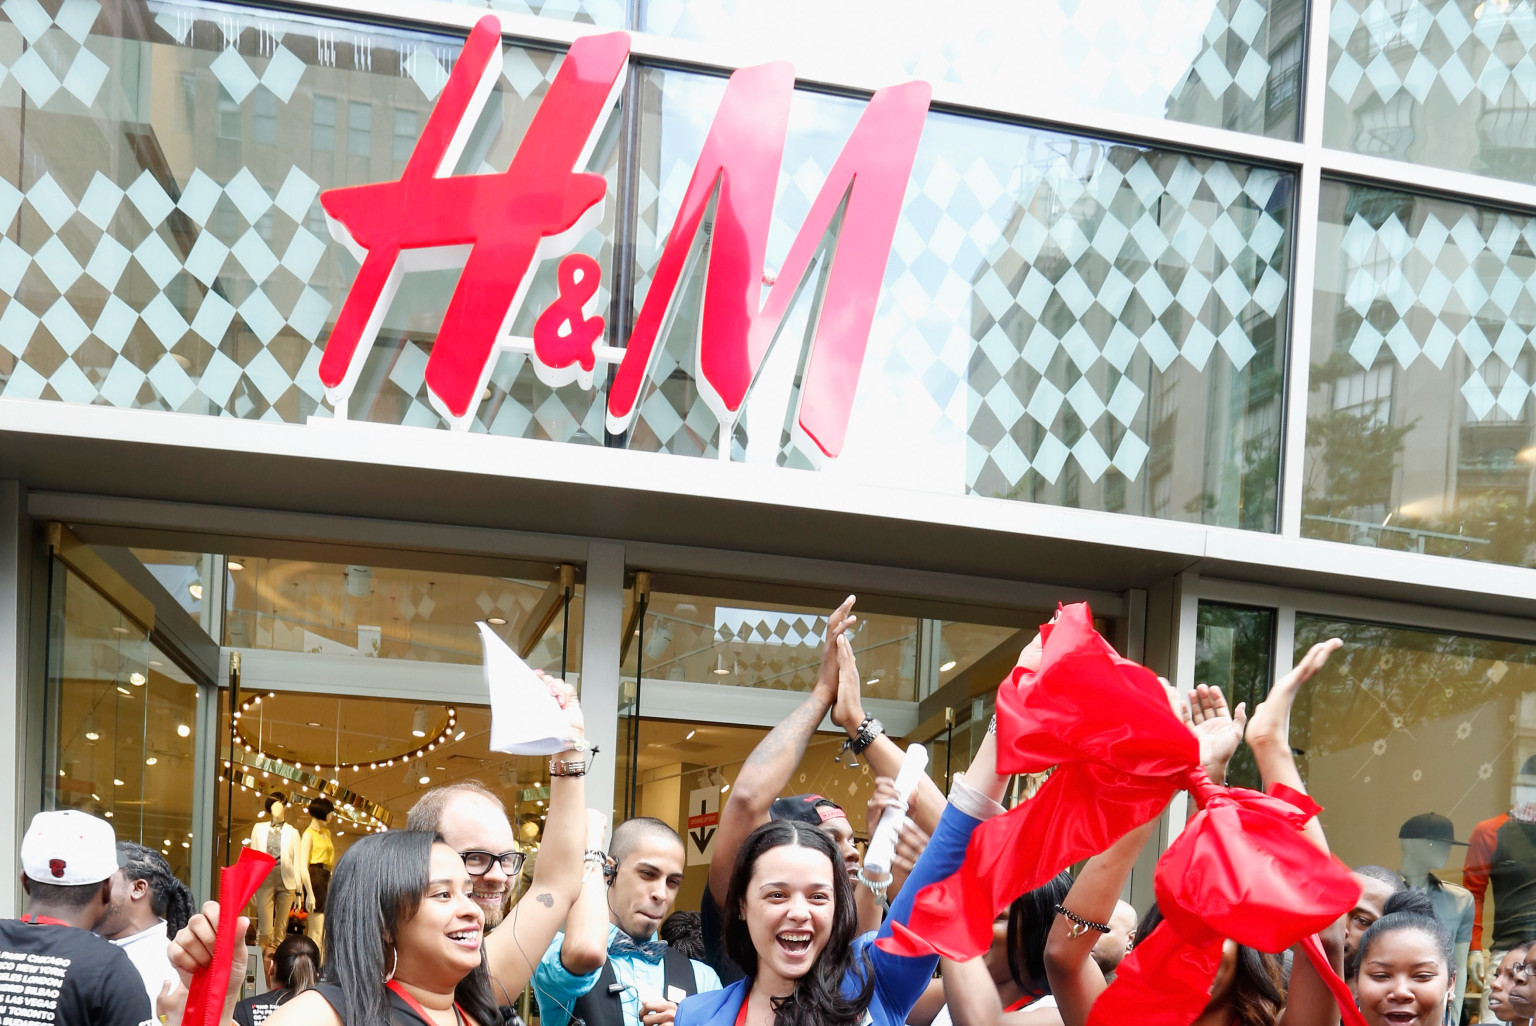 The collection was available in approximately H&M stores in 19 countries and was advertised through a tongue-in-cheek video campaign mocking the high-fashion community. H&M even provided breakfast to the first customers and a free limited edition Karl Lagerfeld t-shirt.